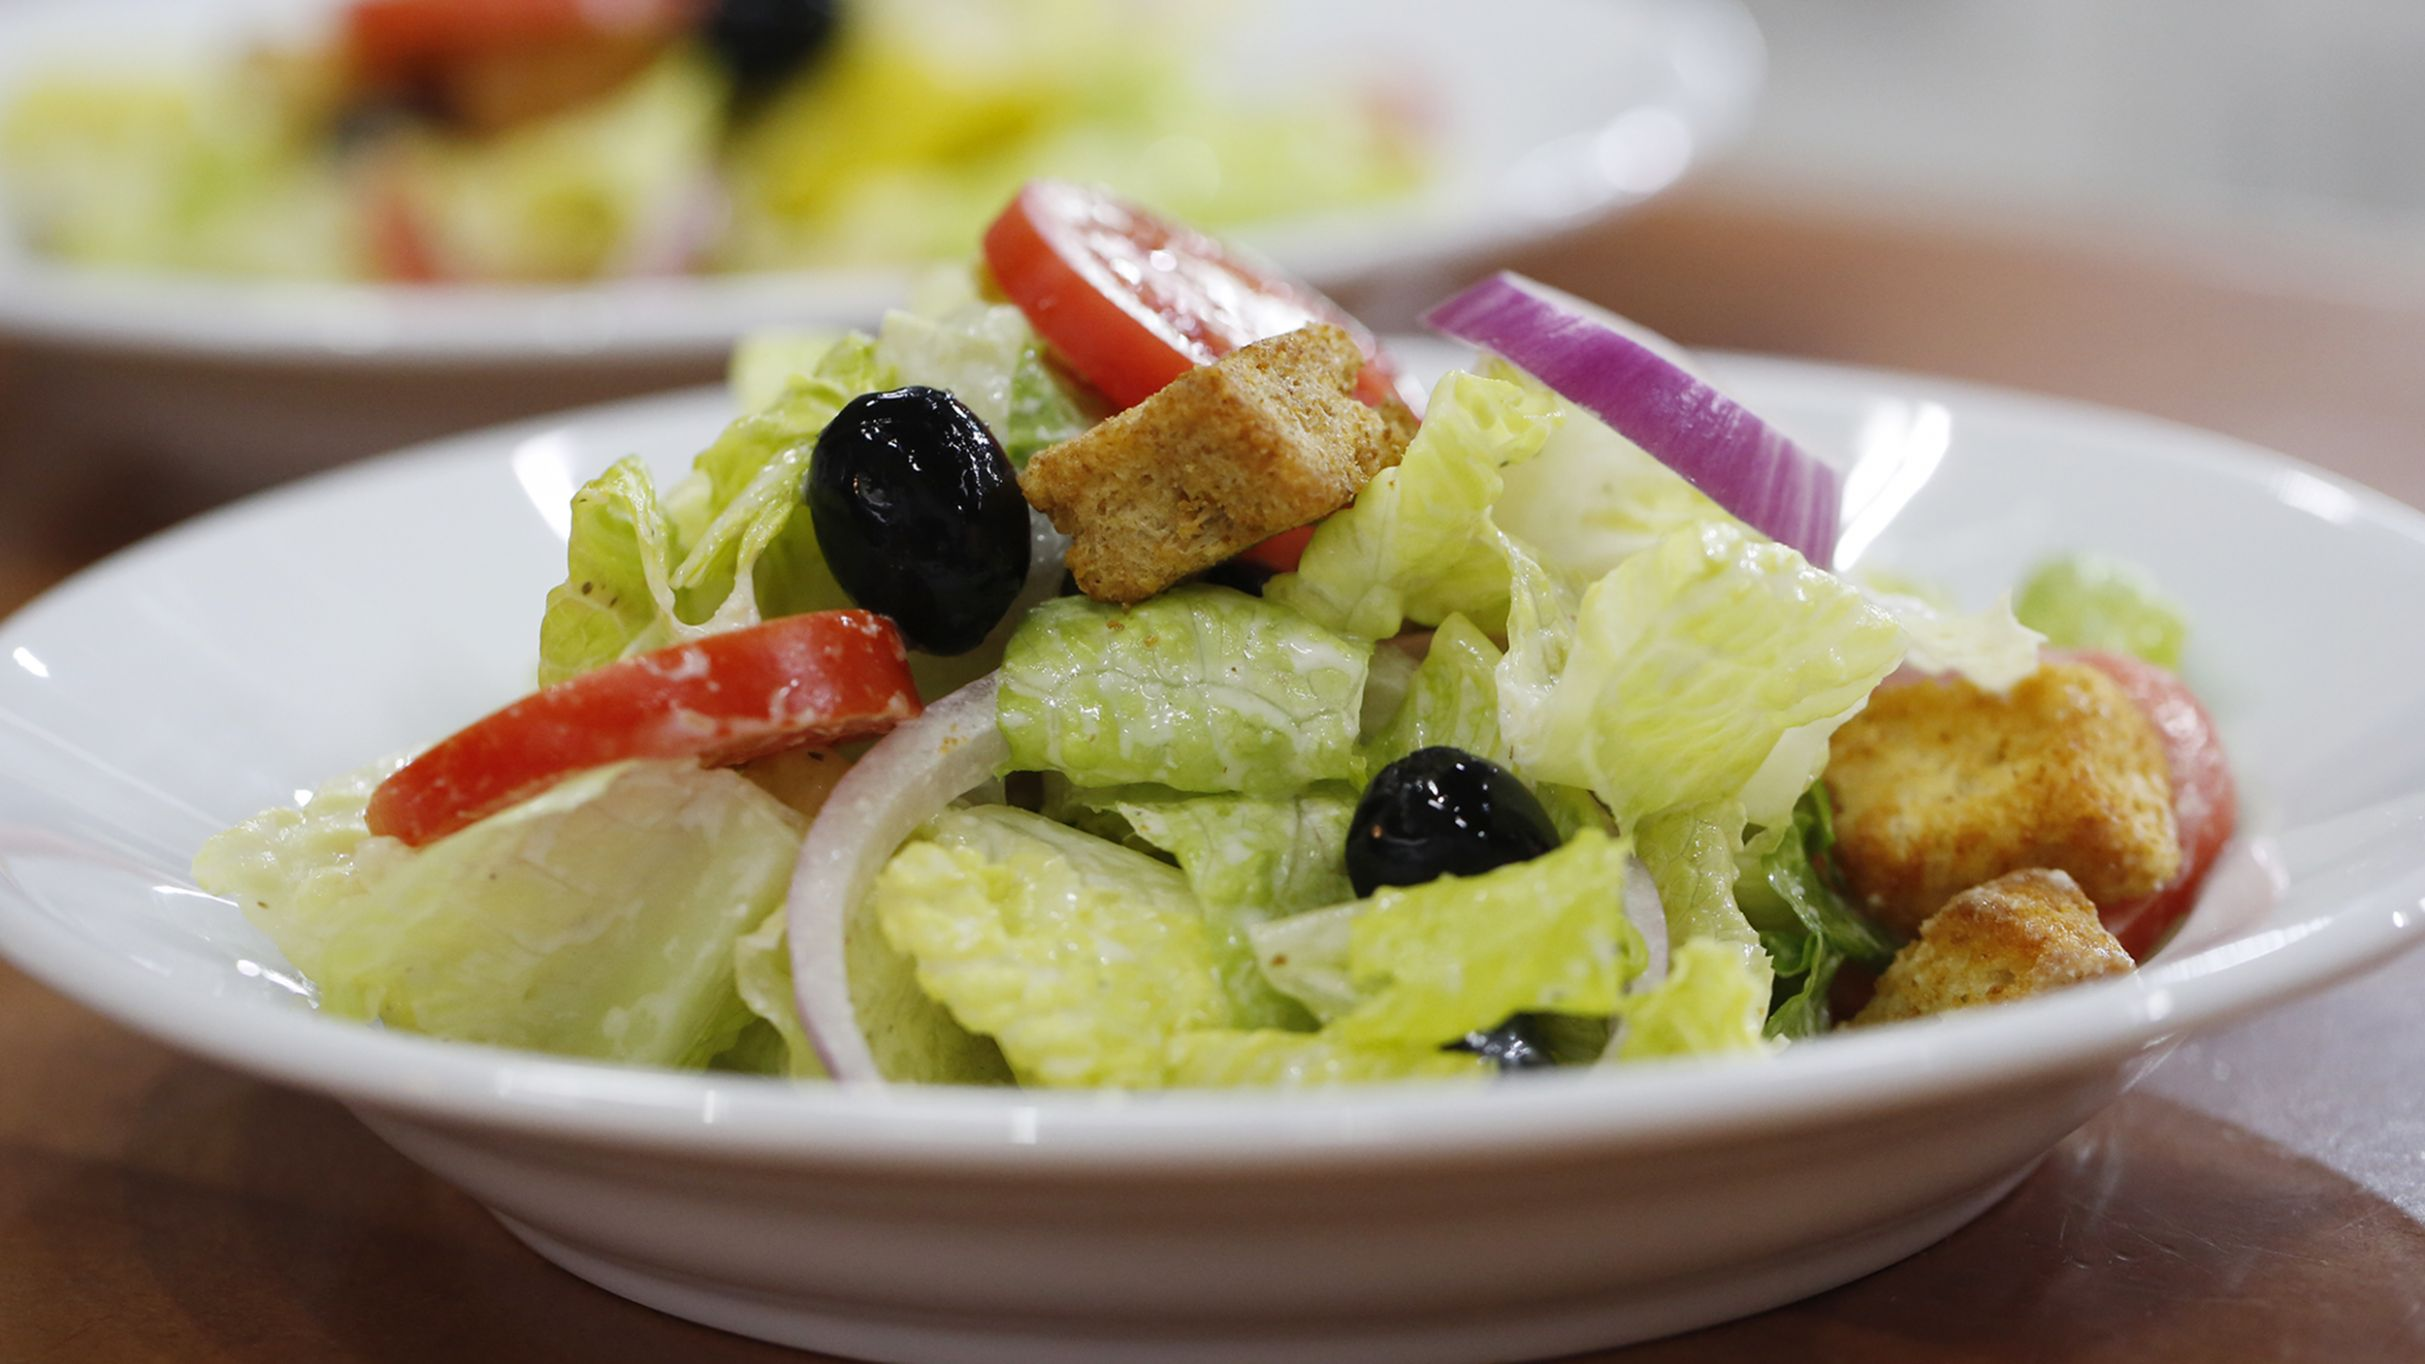 Olive Garden-Style Salad with Creamy Italian Dressing - Salad Recipes And Dressings